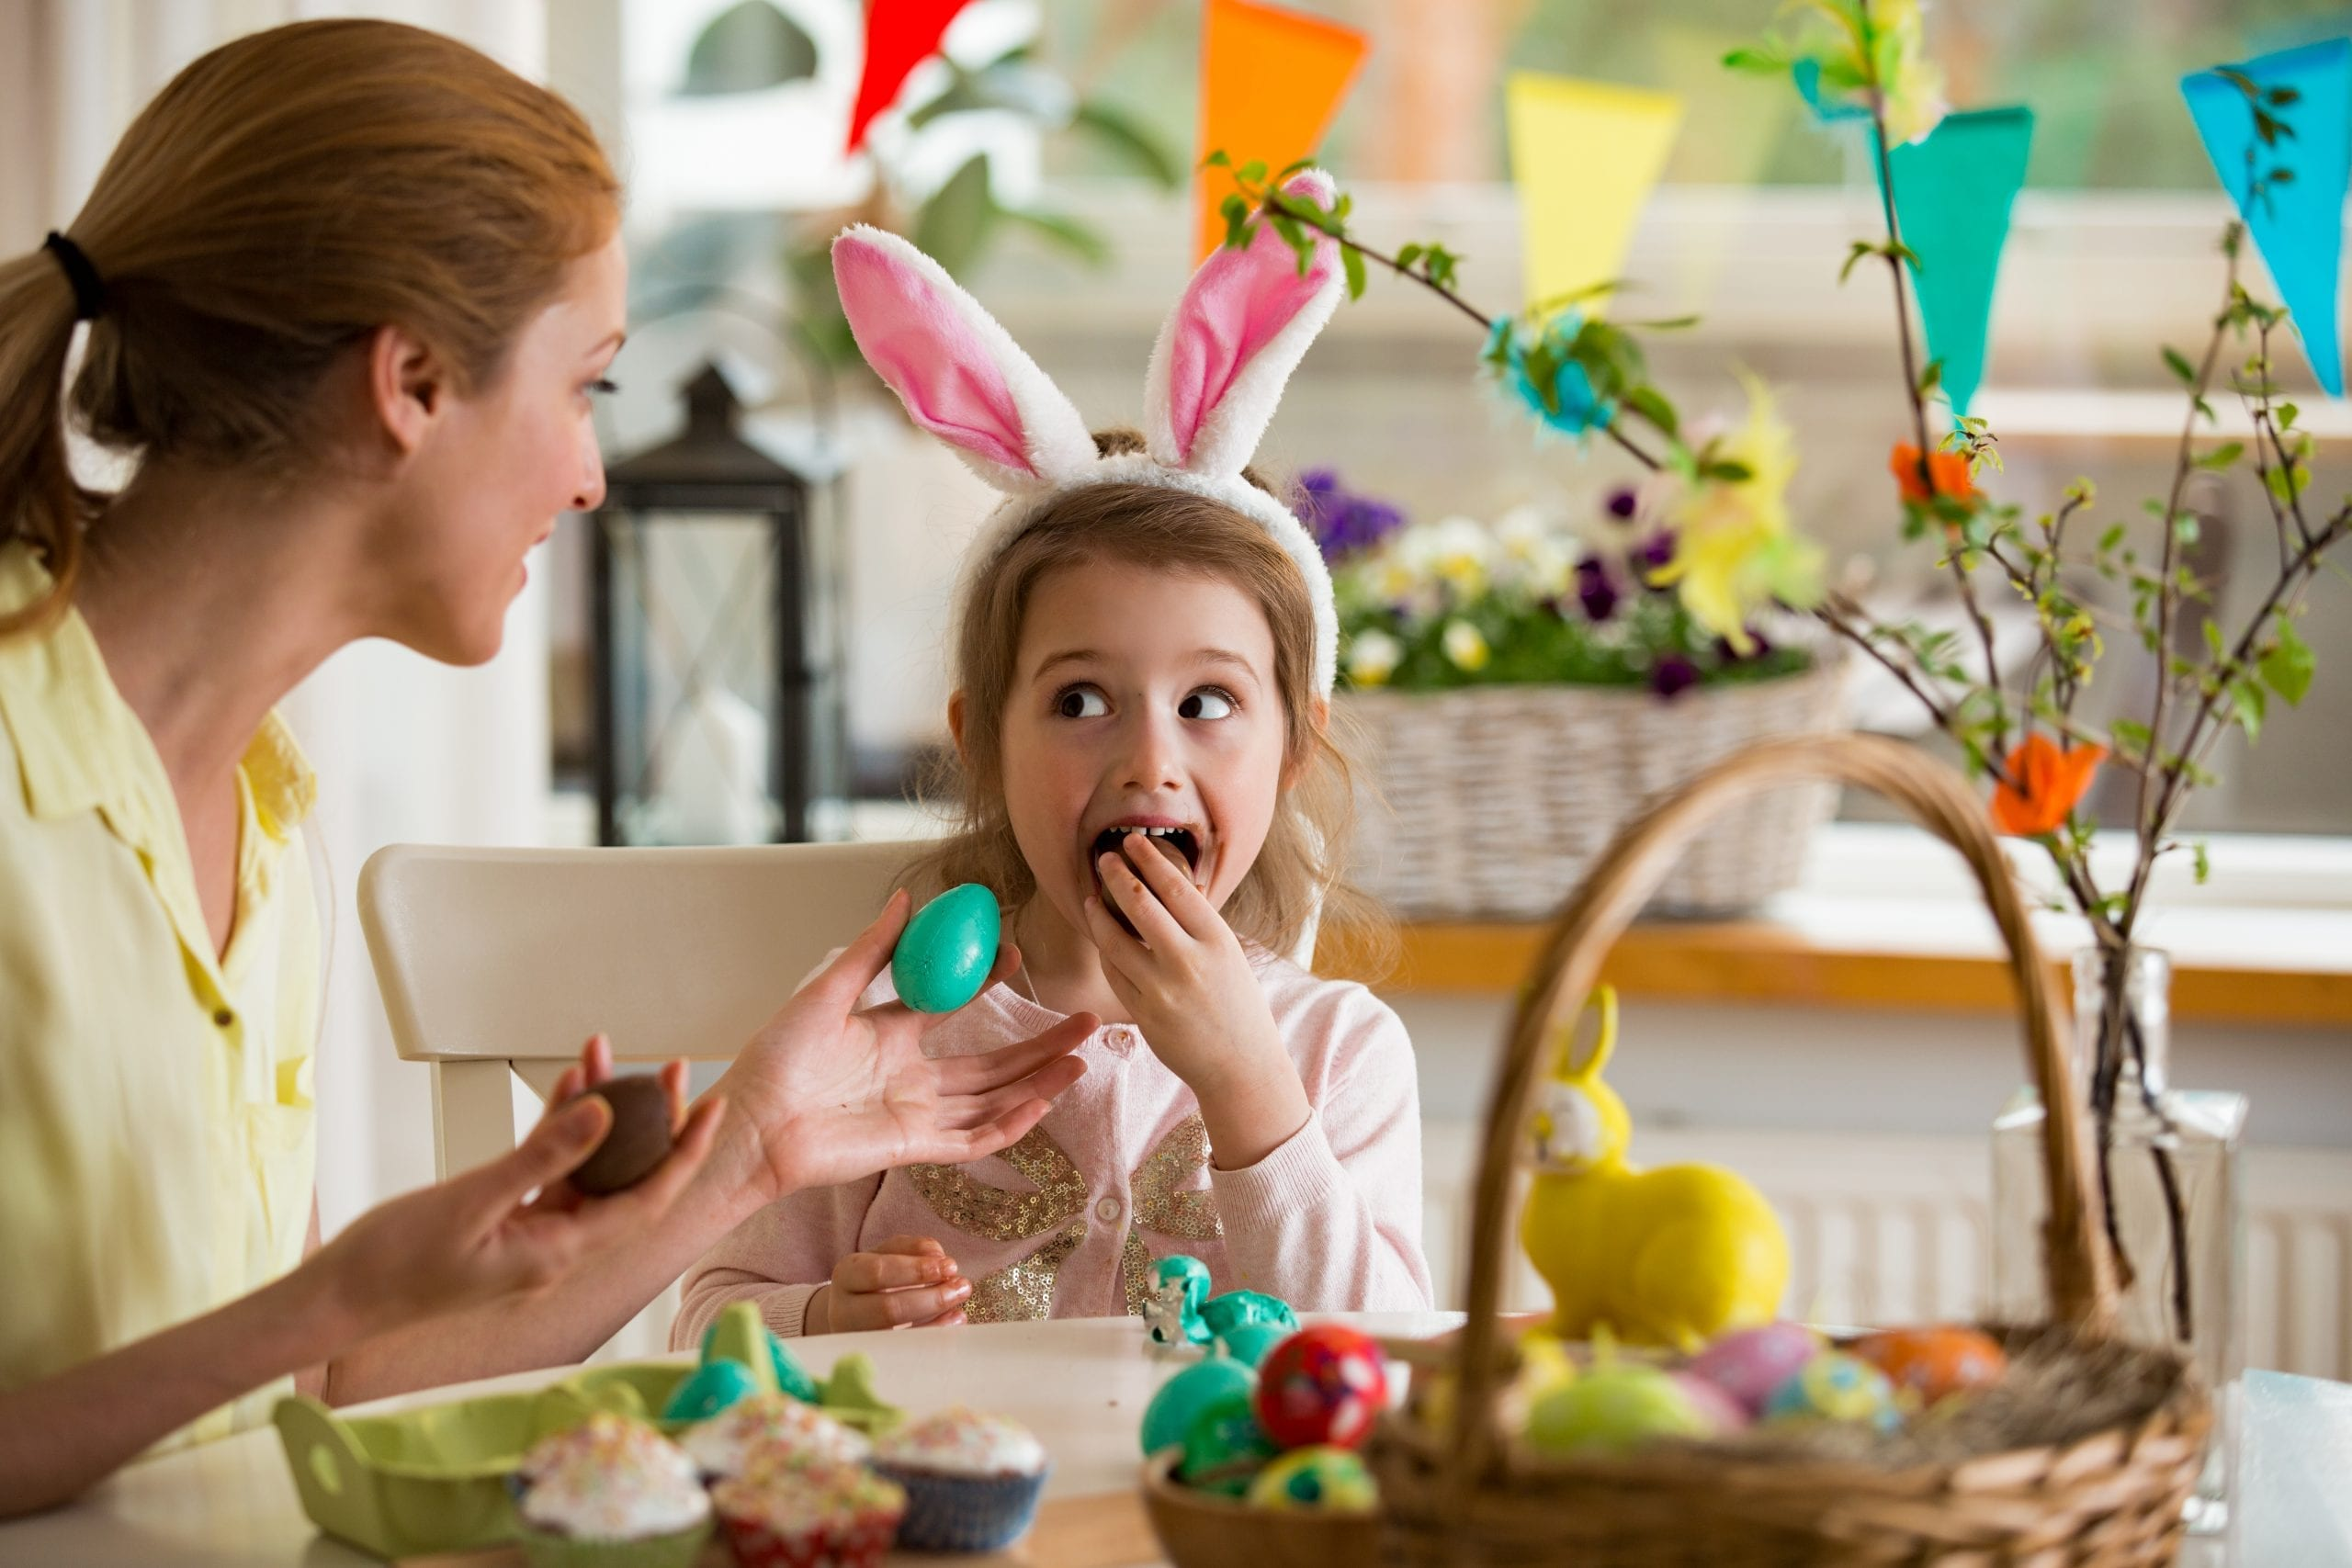 Tips on how to be more sustainable this Easter